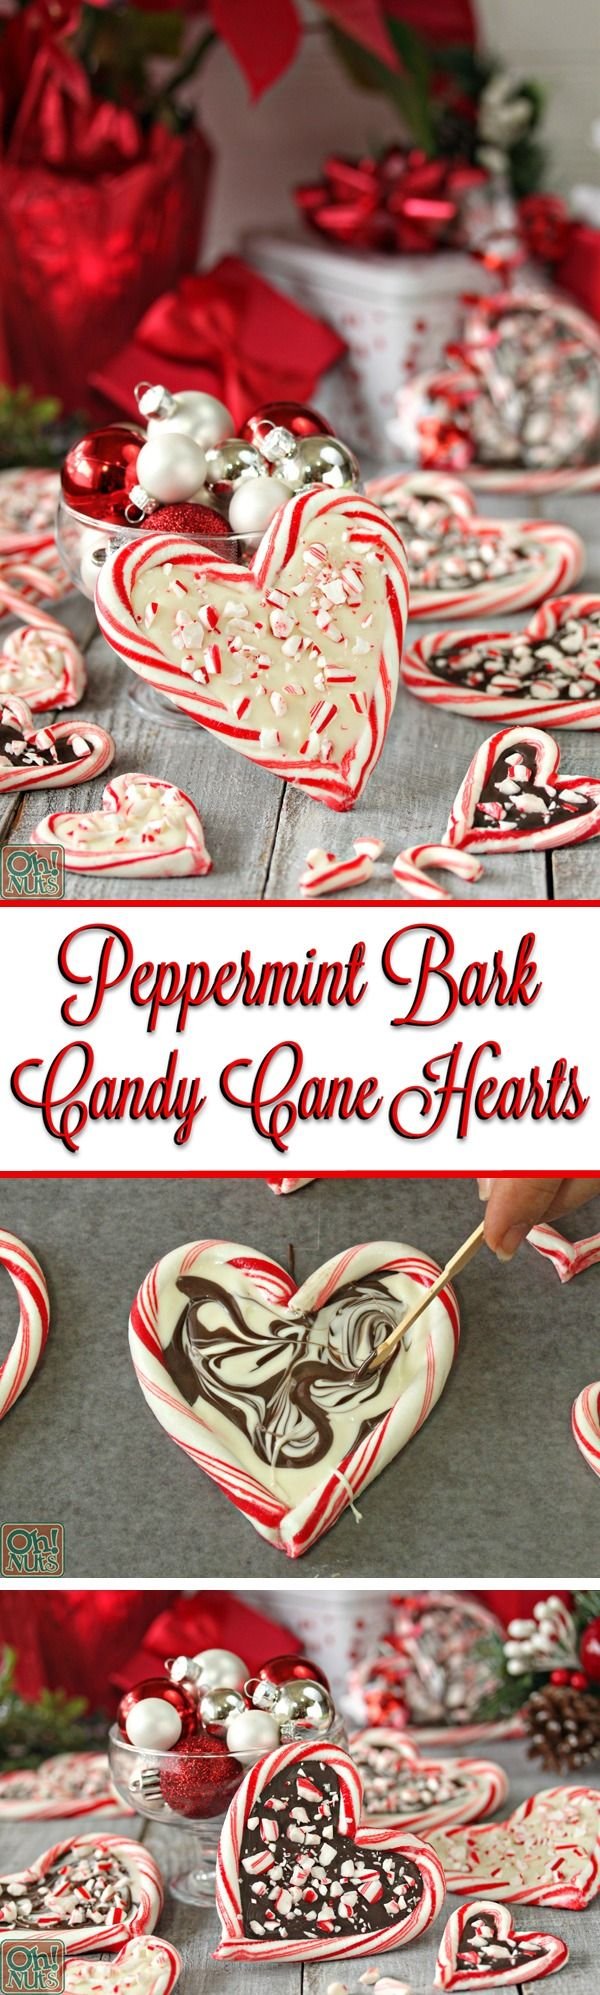 Peppermint Bark Candy Cane Hearts - such an easy and cute Christmas gift! | From OhNuts.com/blog